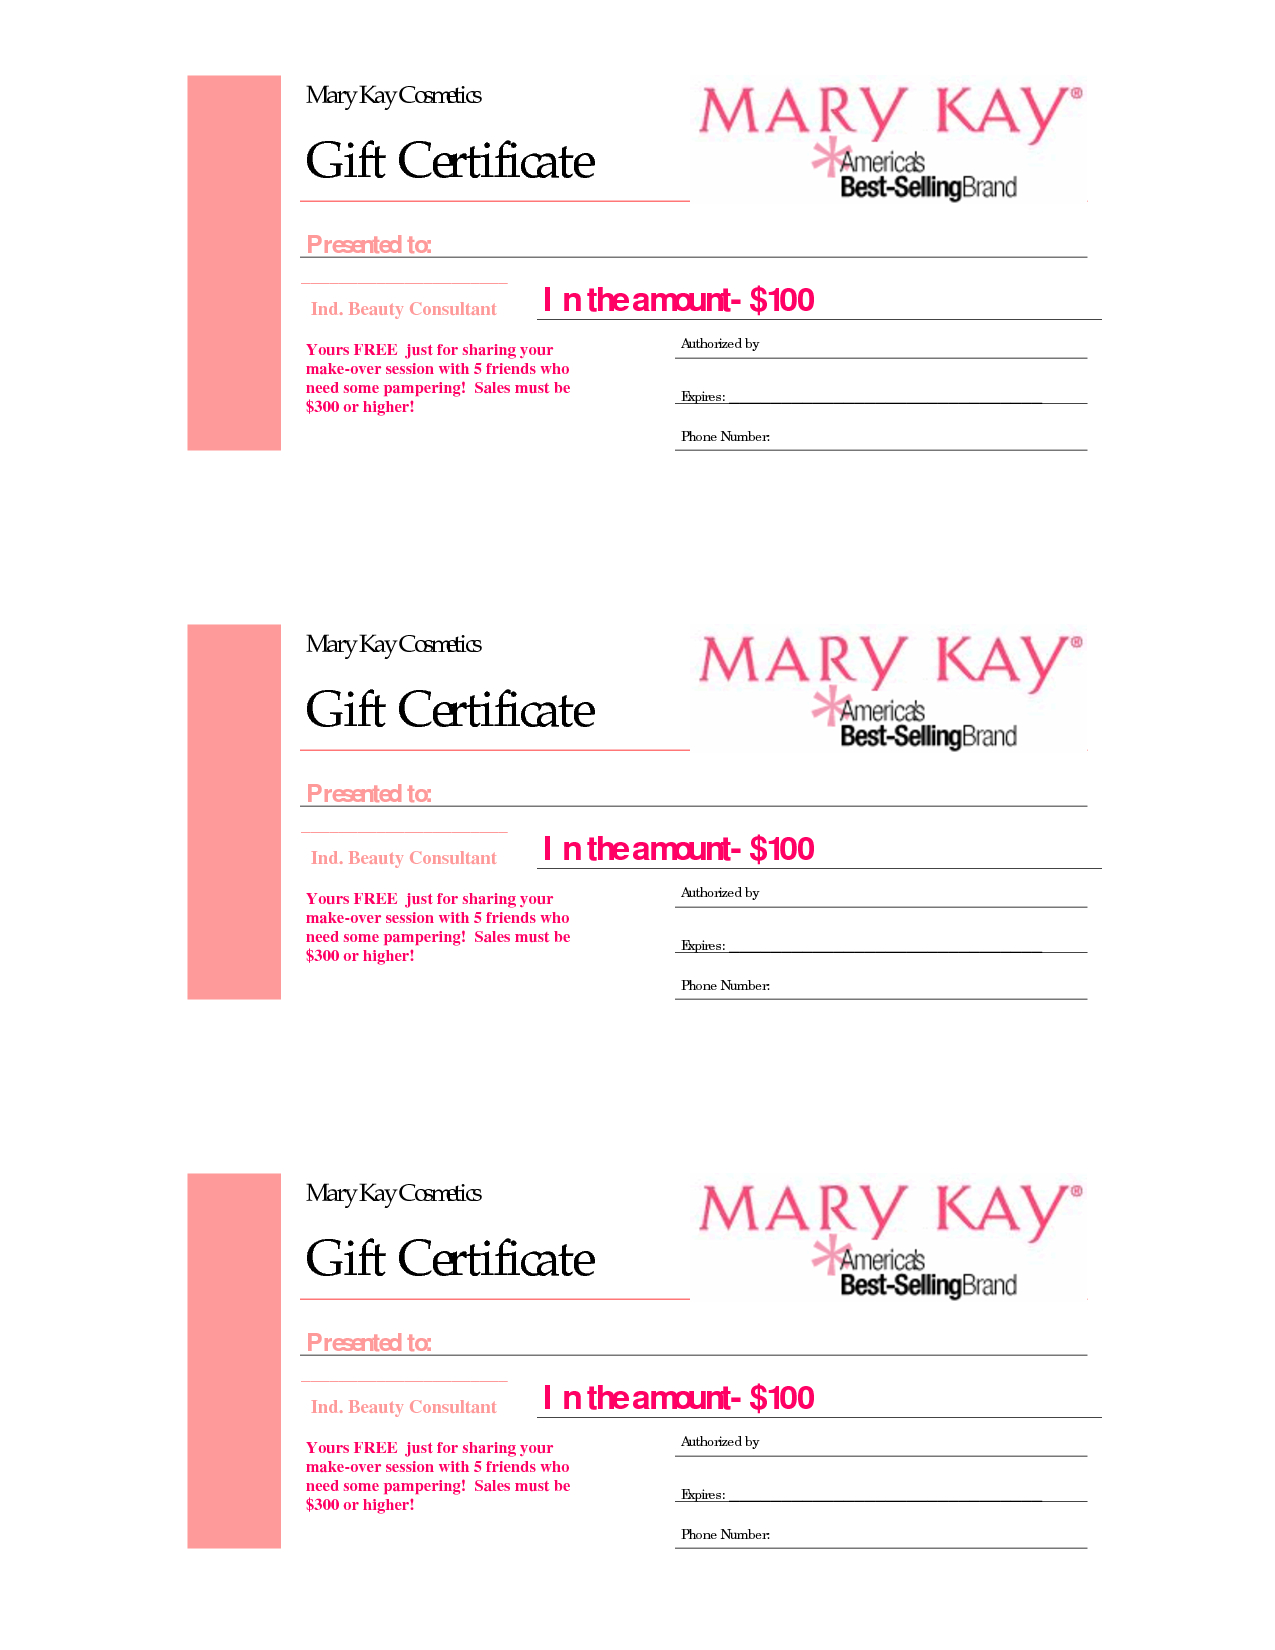 Gift Certificates  Mary Kay Gift Certificate Checo That With Mary Kay Gift Certificate Template